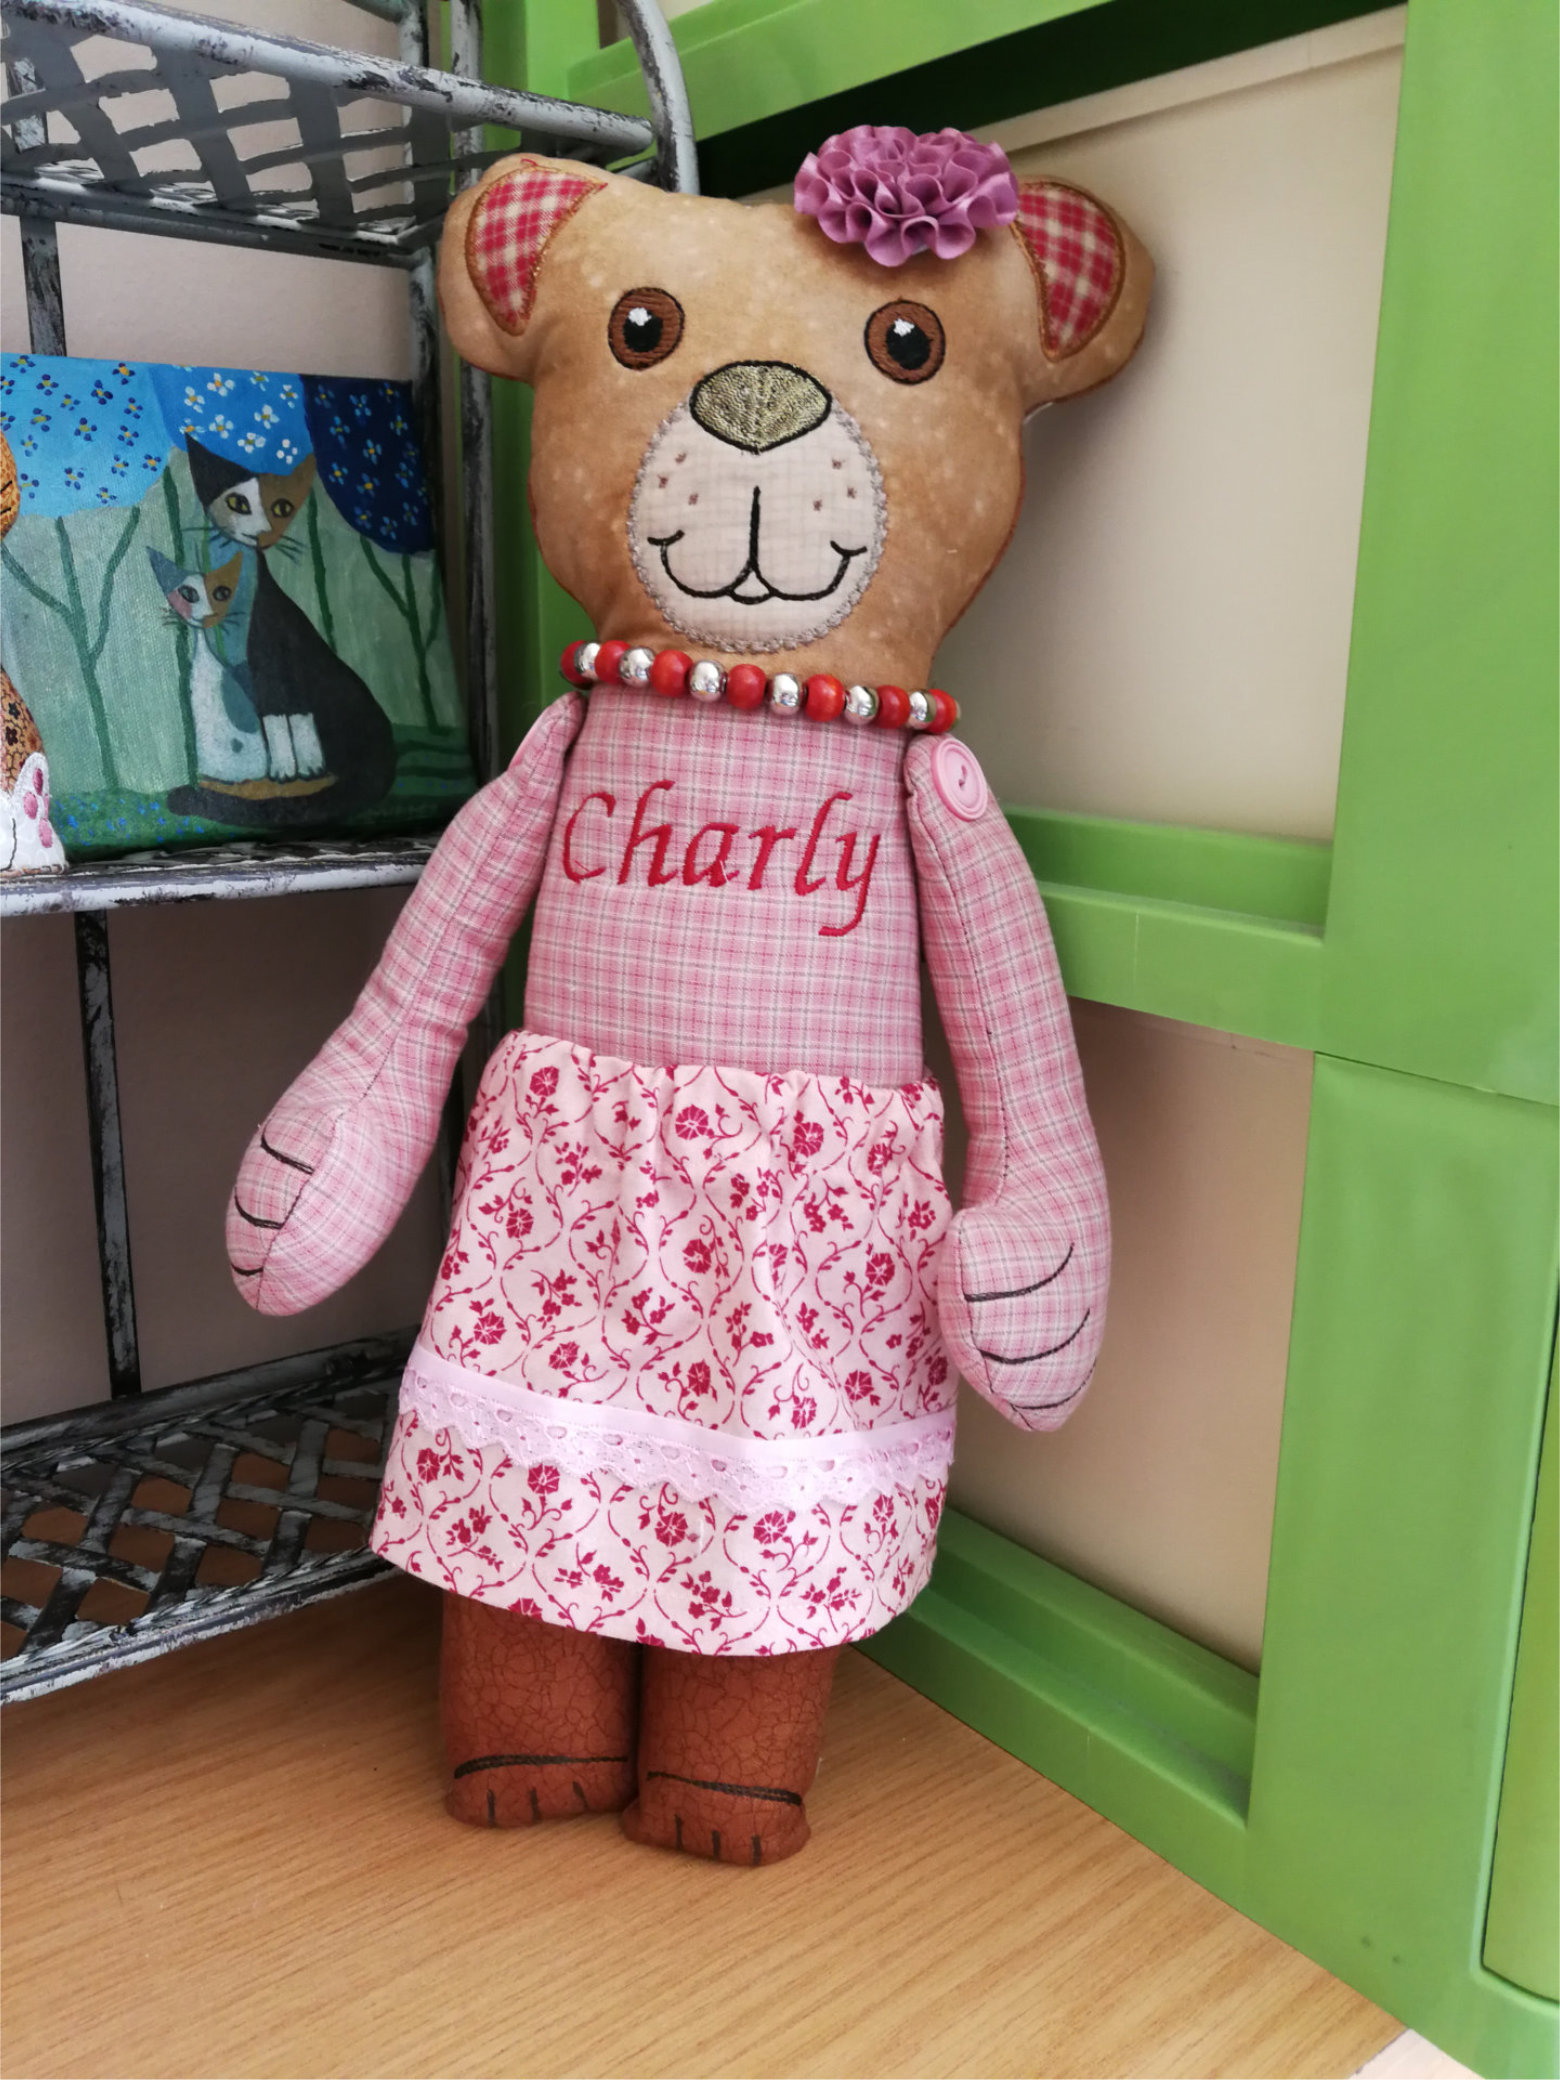 Charly The Cute Teddy-6